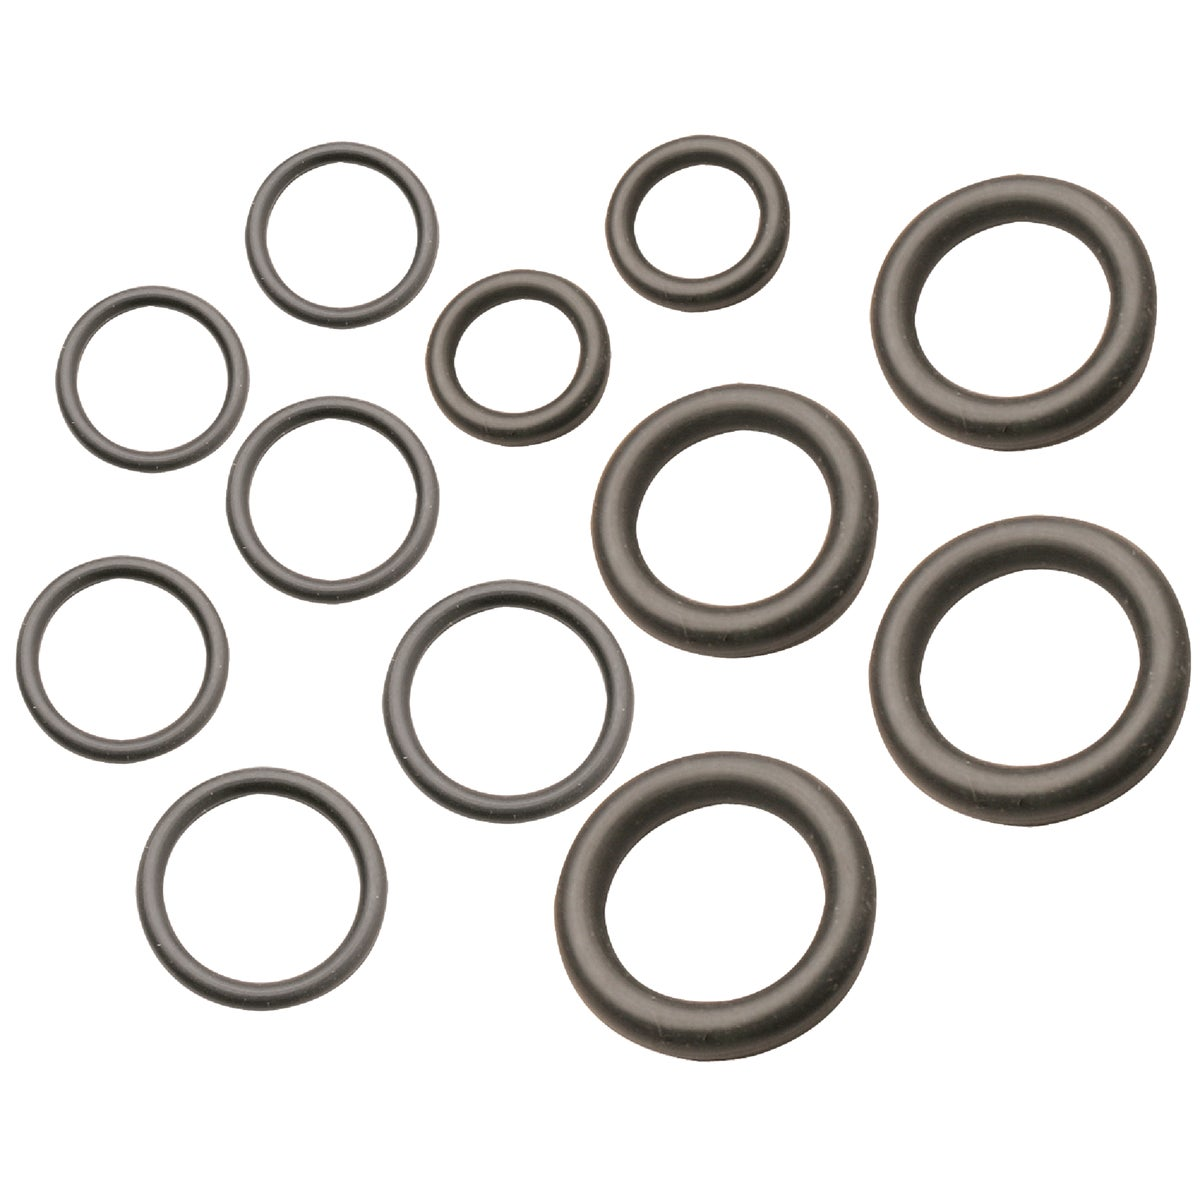 ASSORTED LARGE O-RINGS - 402665 by Plumb Pak/keeney Mfg